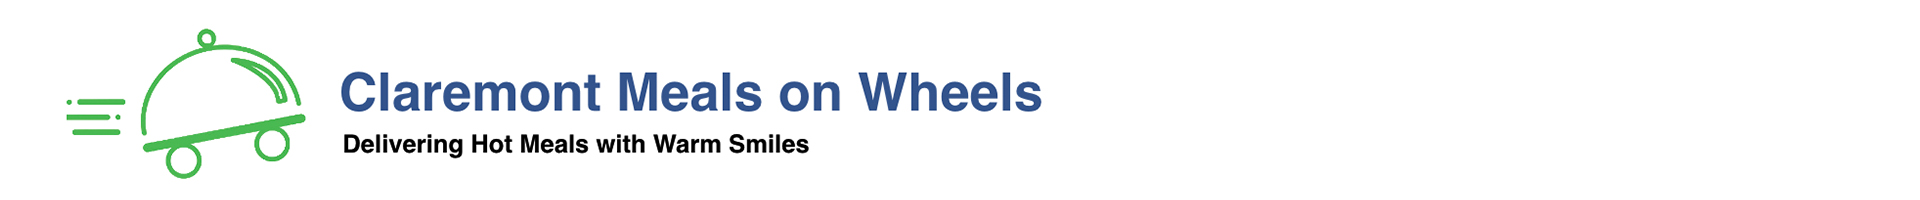 Claremont Meals On Wheels Logo